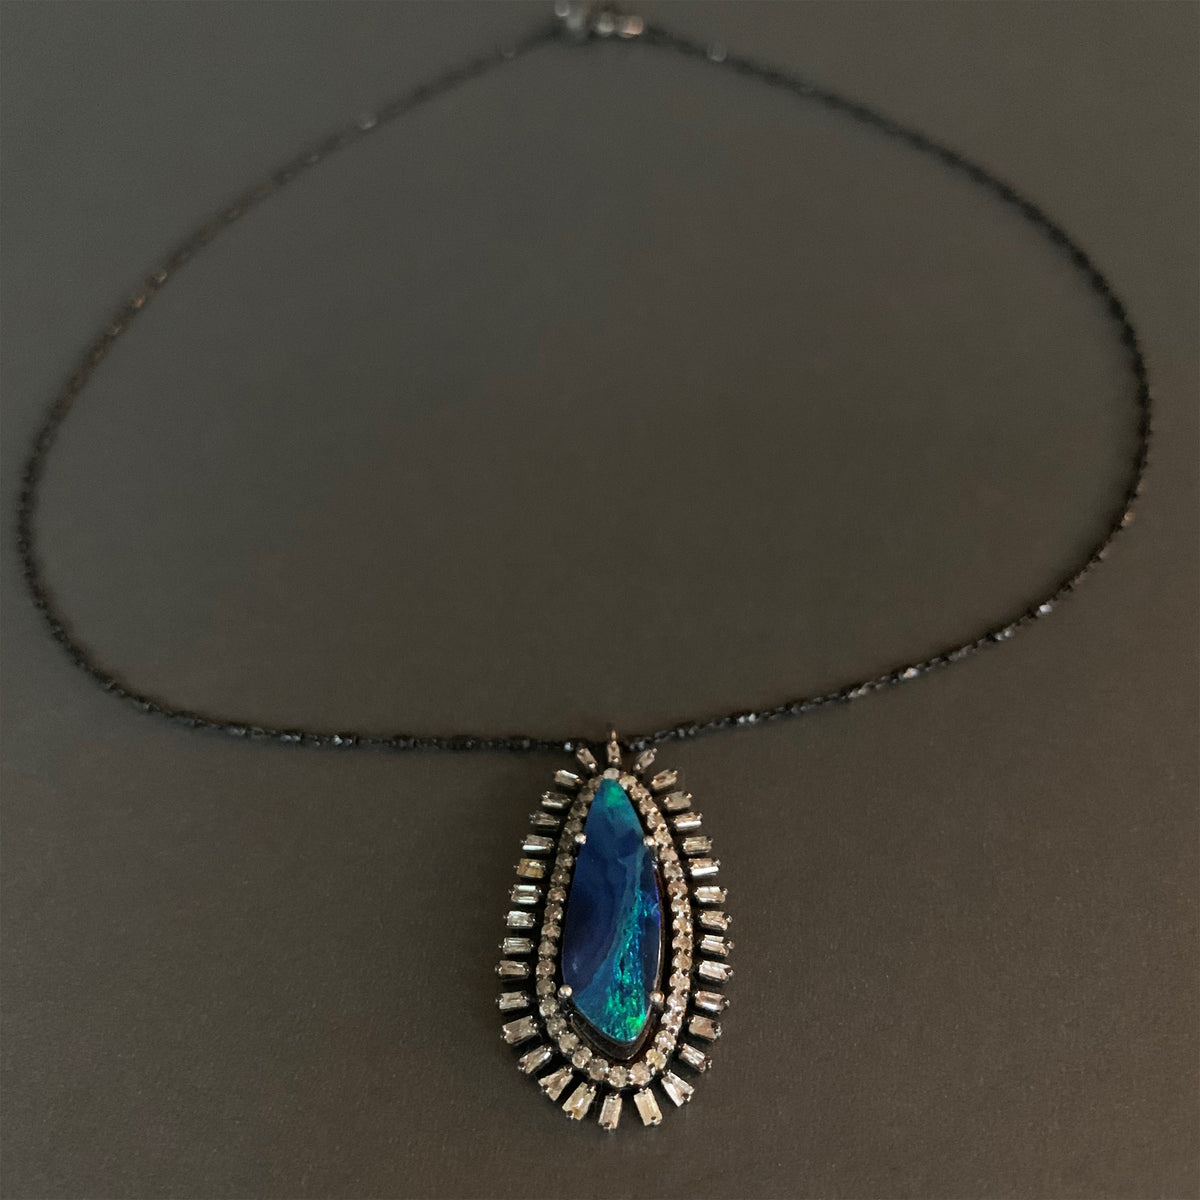 She's Bolder and Wiser Now (opal and diamonds necklace)